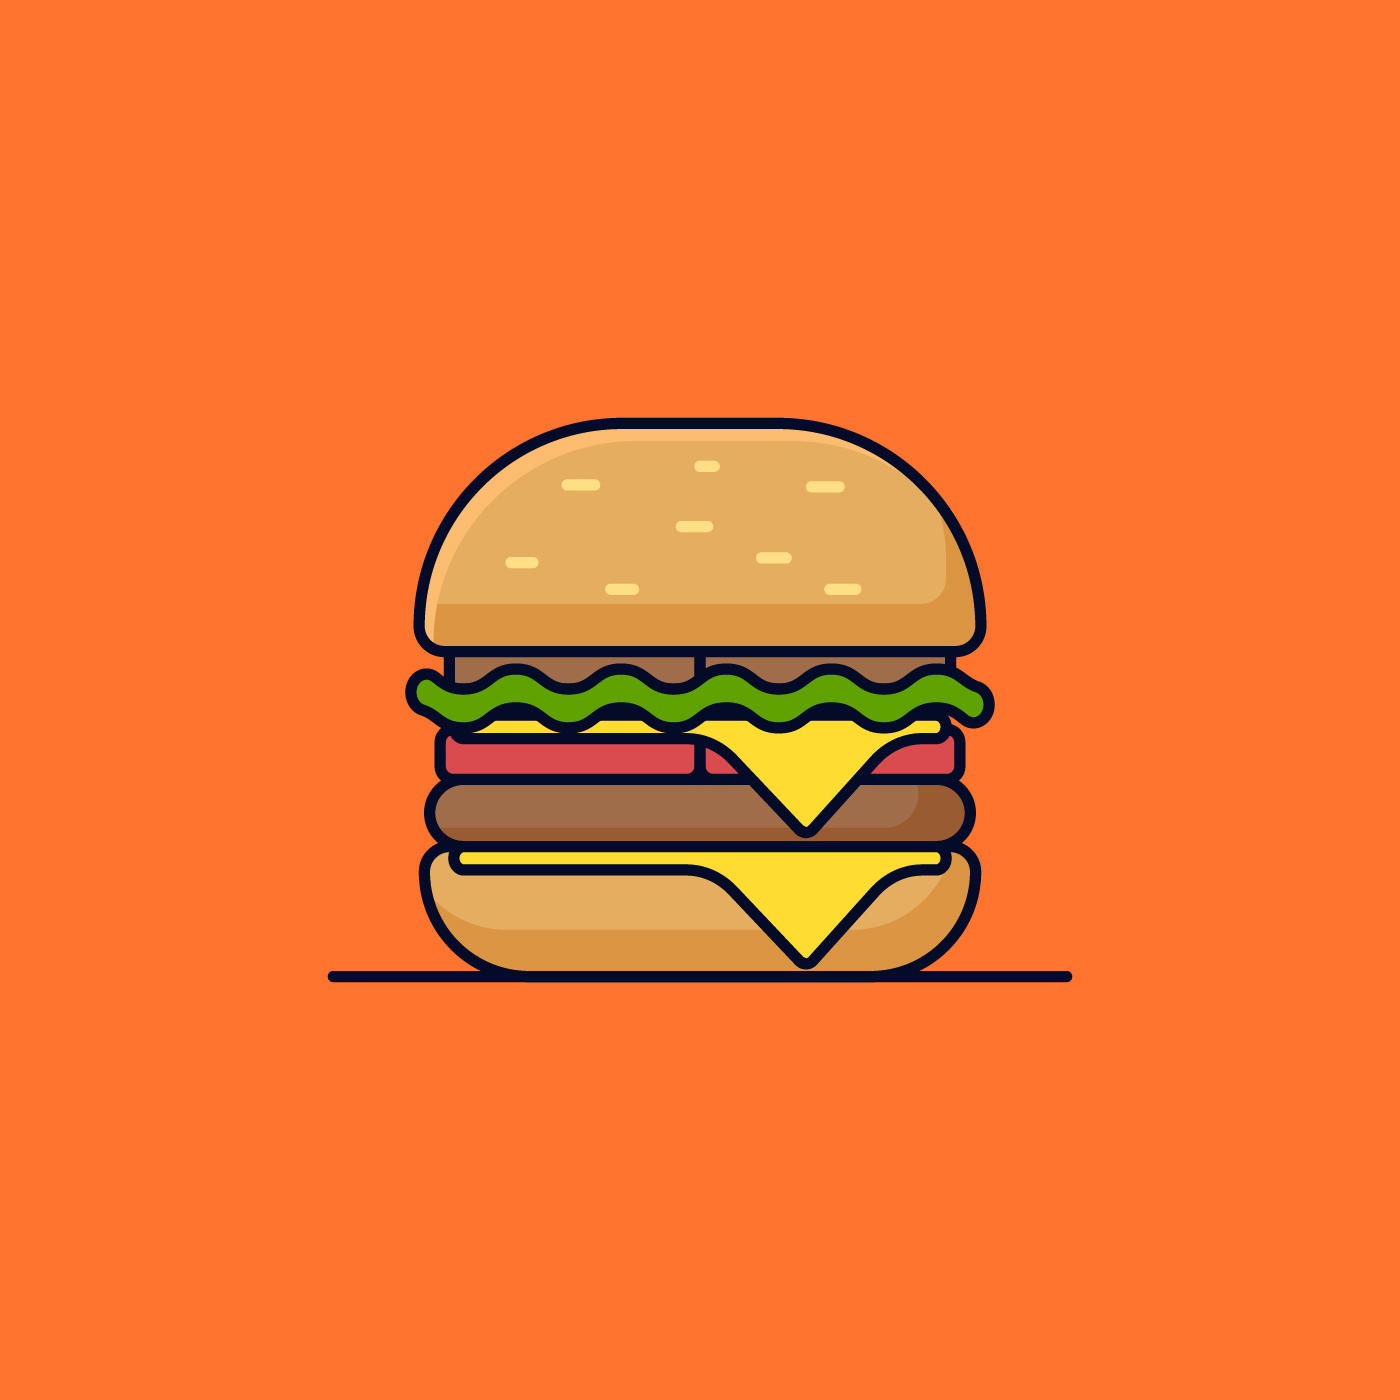 Double Cheese Burger Download Free Vectors Clipart Graphics